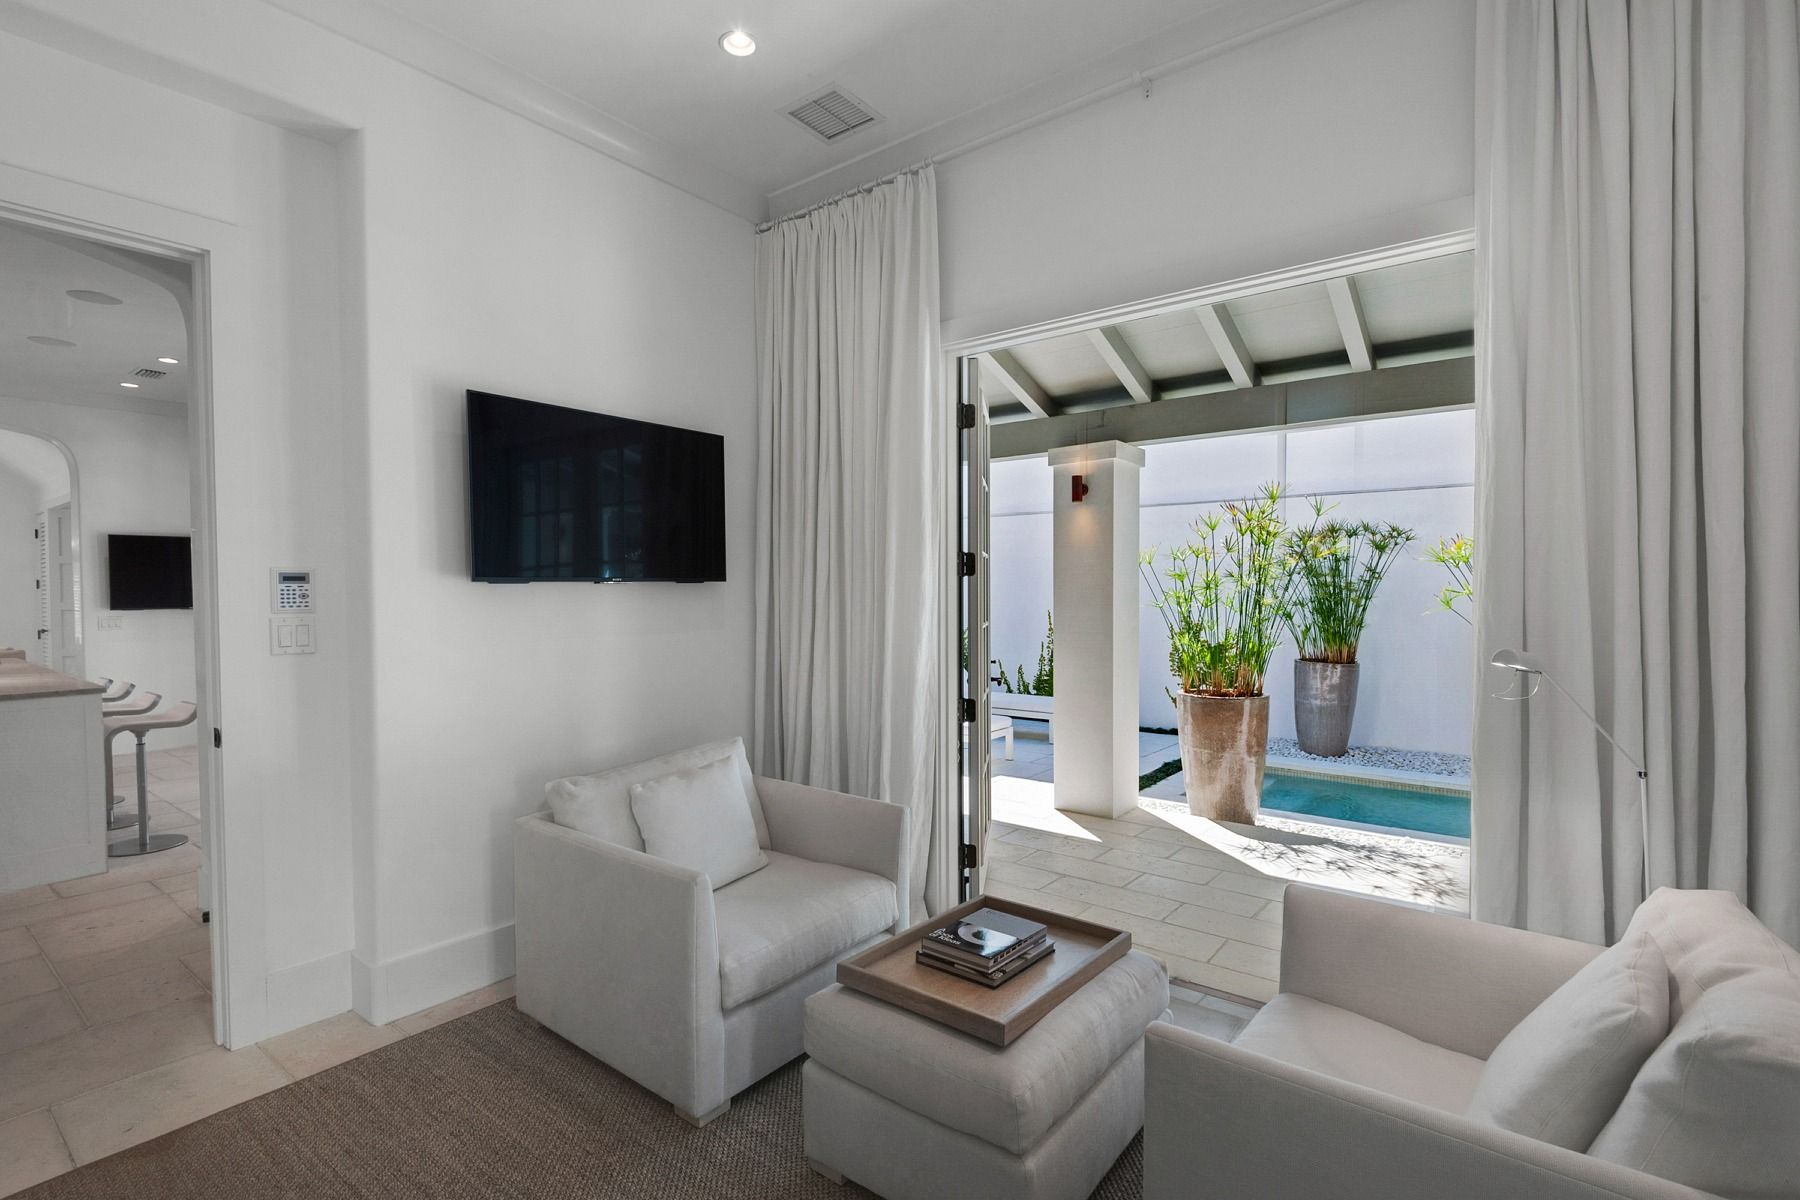 Check Out This Home For Sale on Alys Beach's Most Iconic